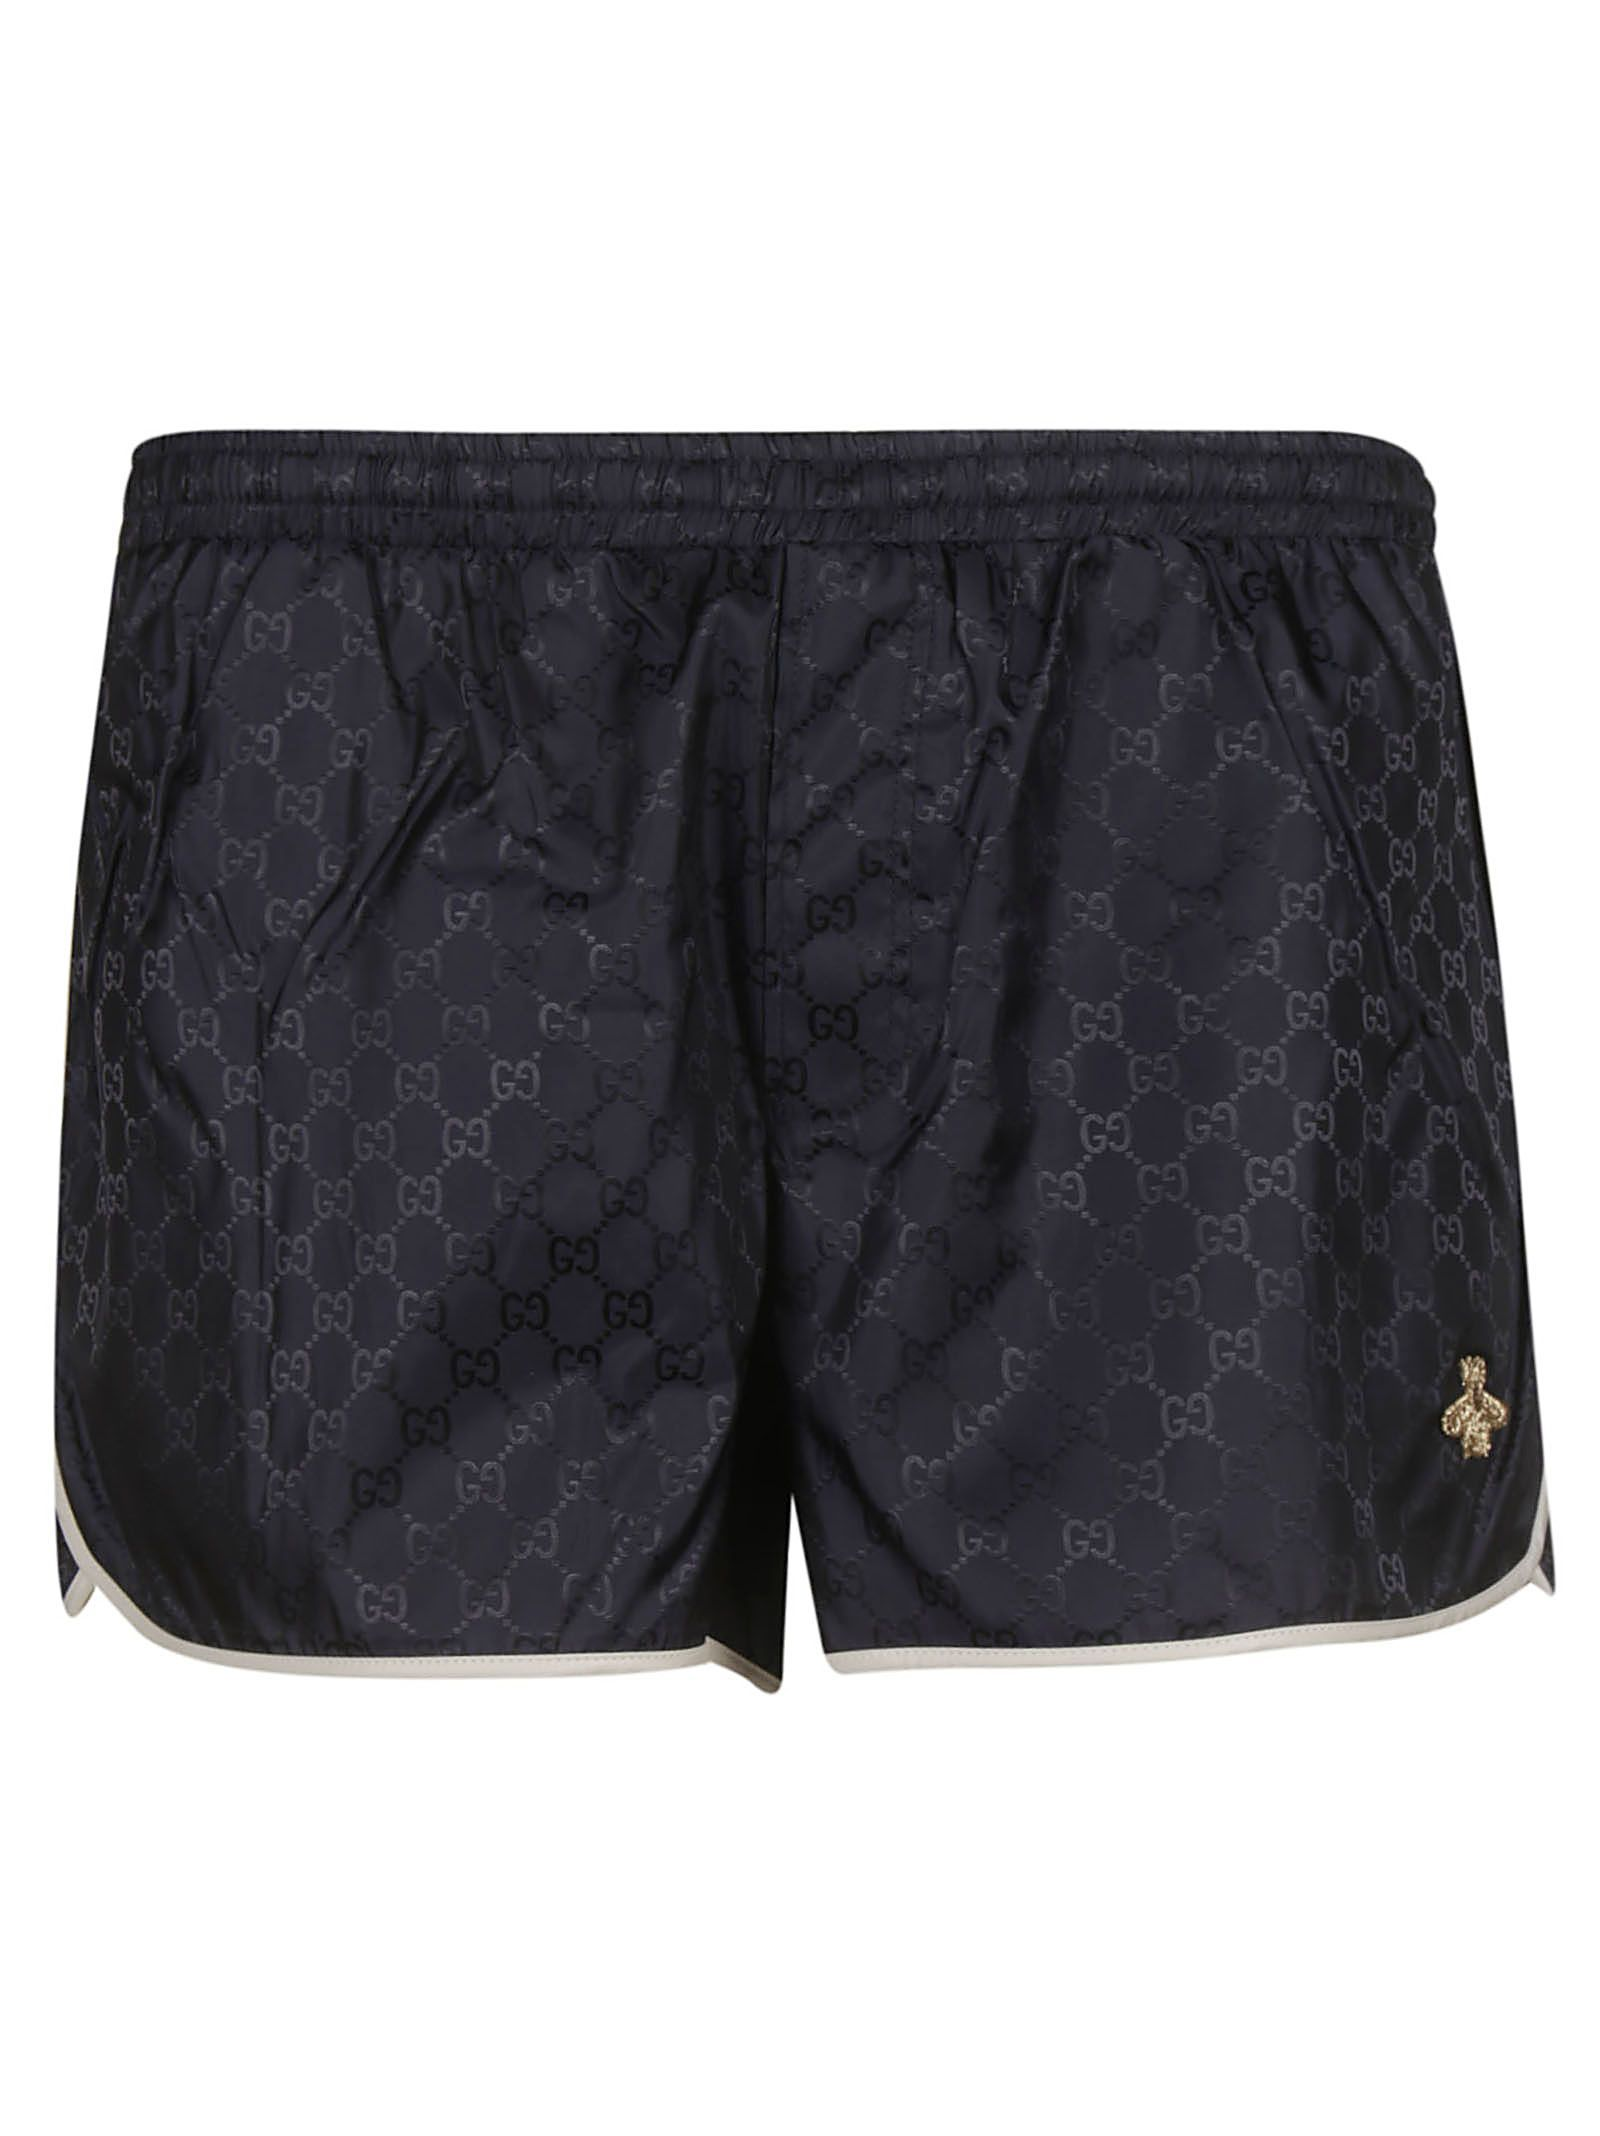 a3ea23ddfc GUCCI BEE EMBROIDERY SWIM SHORTS. #gucci #cloth | Gucci in 2019 ...